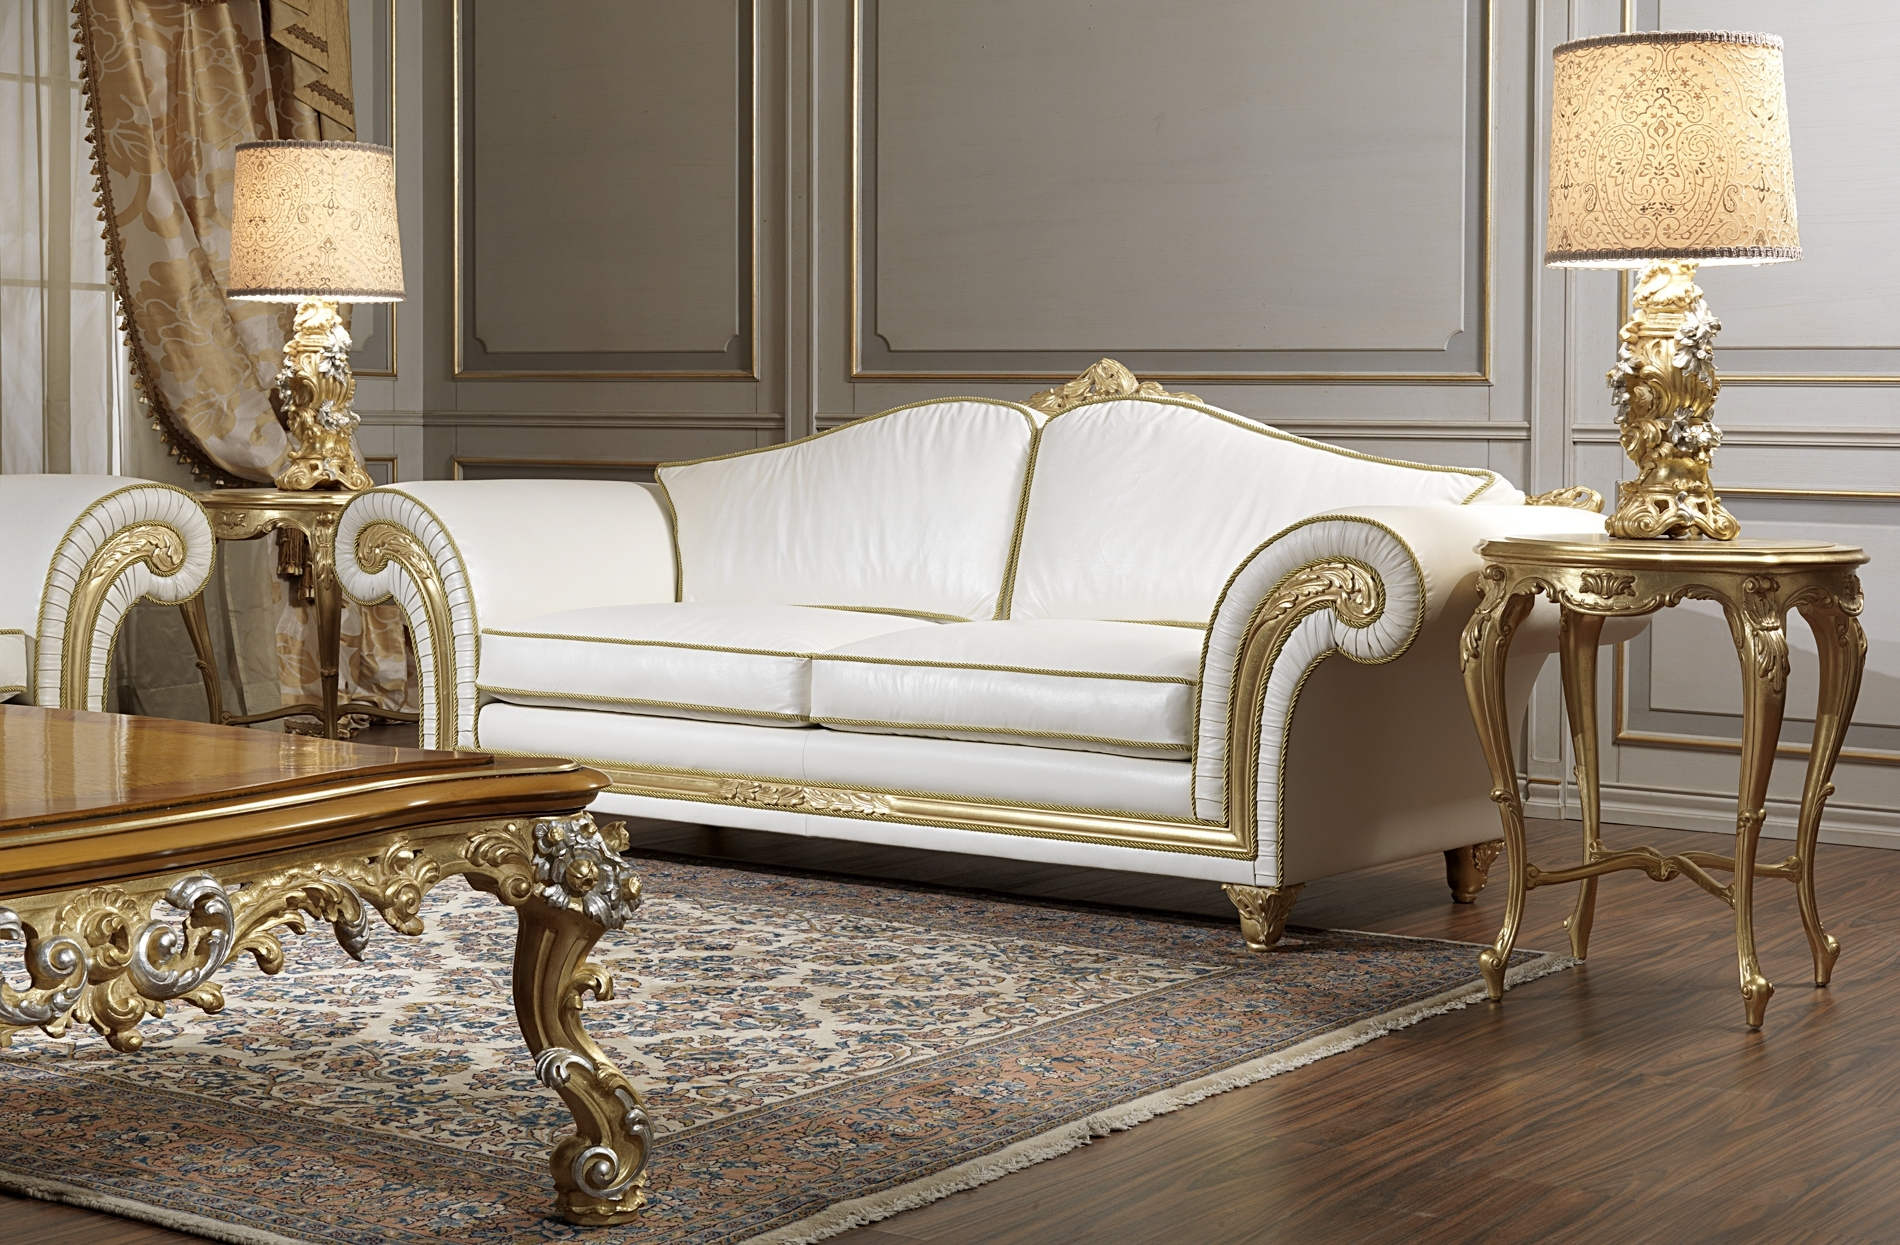 Newest Luxury Sofas Throughout Luxury Sofas In Leather: Classic Style, Modern Beauty (View 7 of 20)